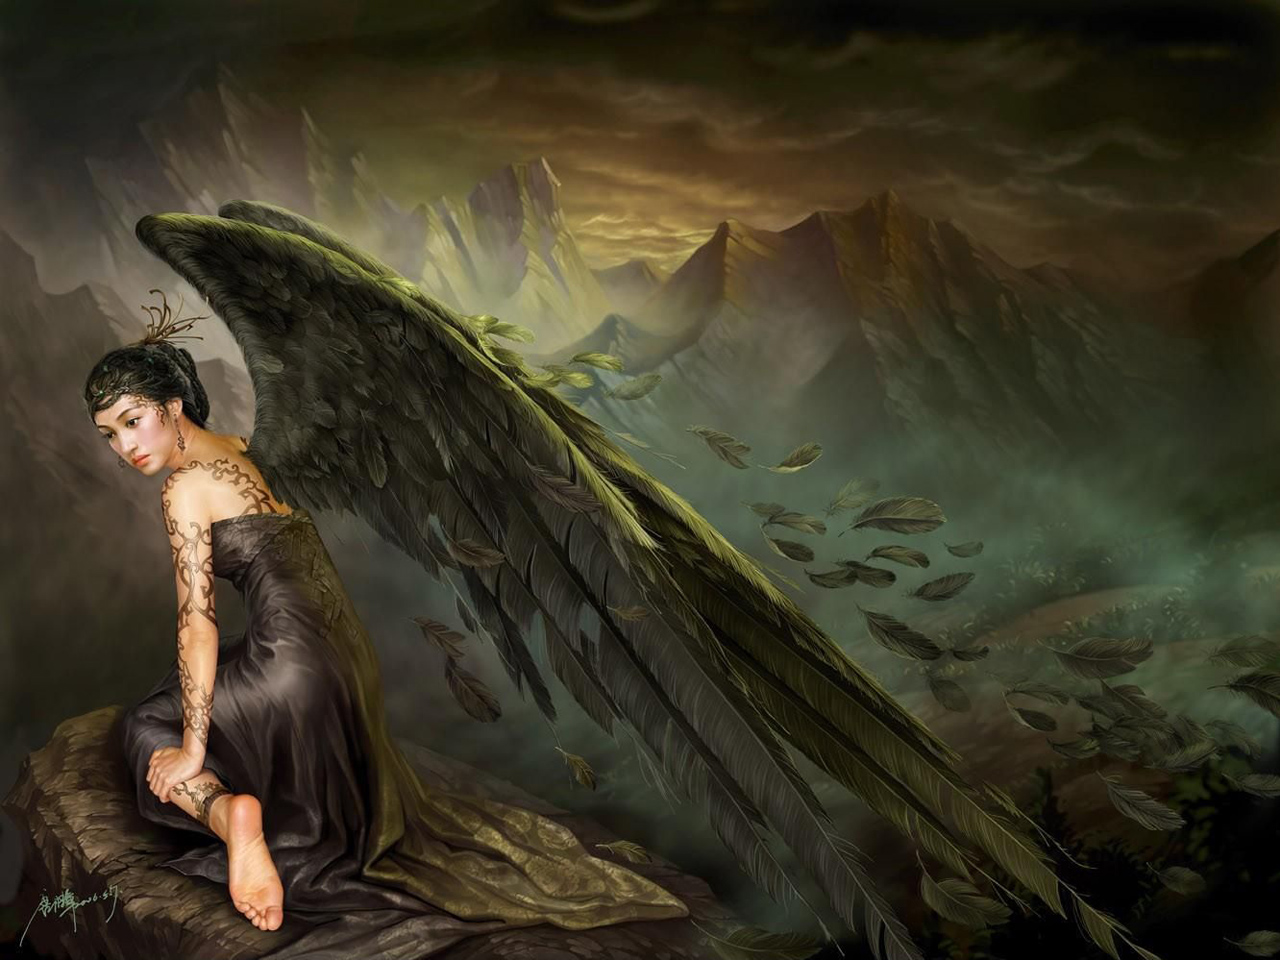 Pic new posts angels wallpaper for mobile - Angel girl wallpaper ...